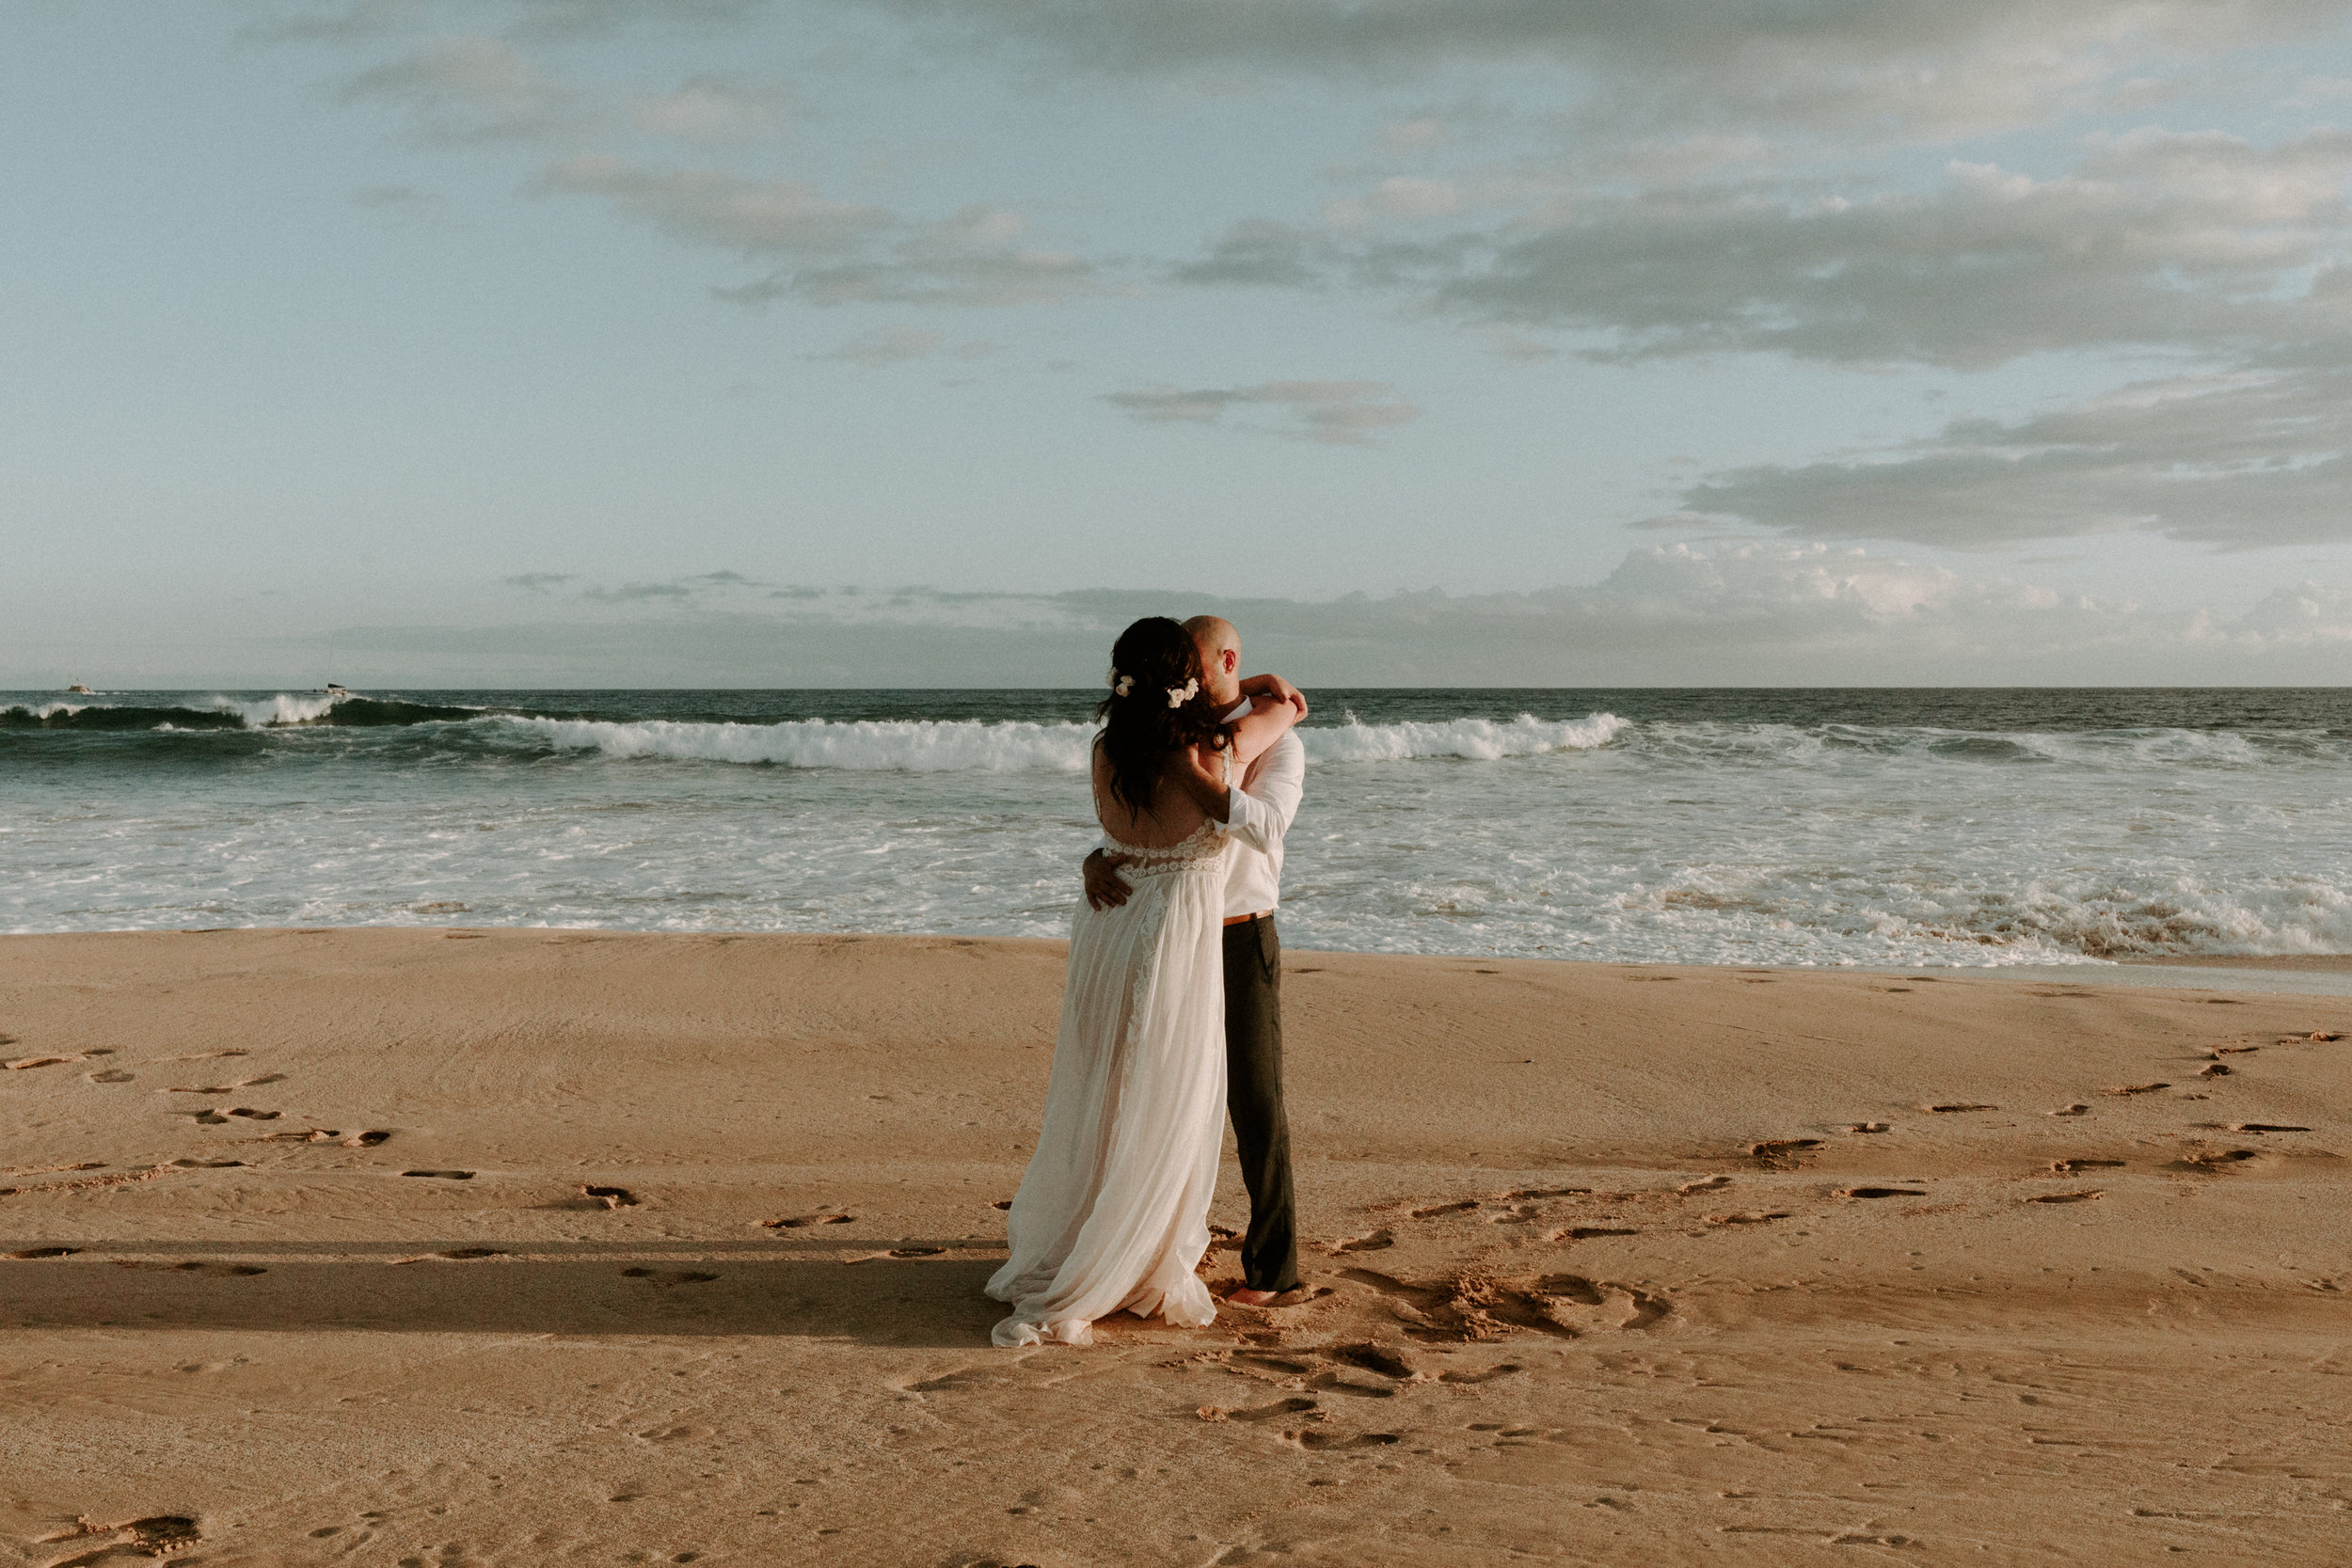 kauai__wedding-2-6.jpg